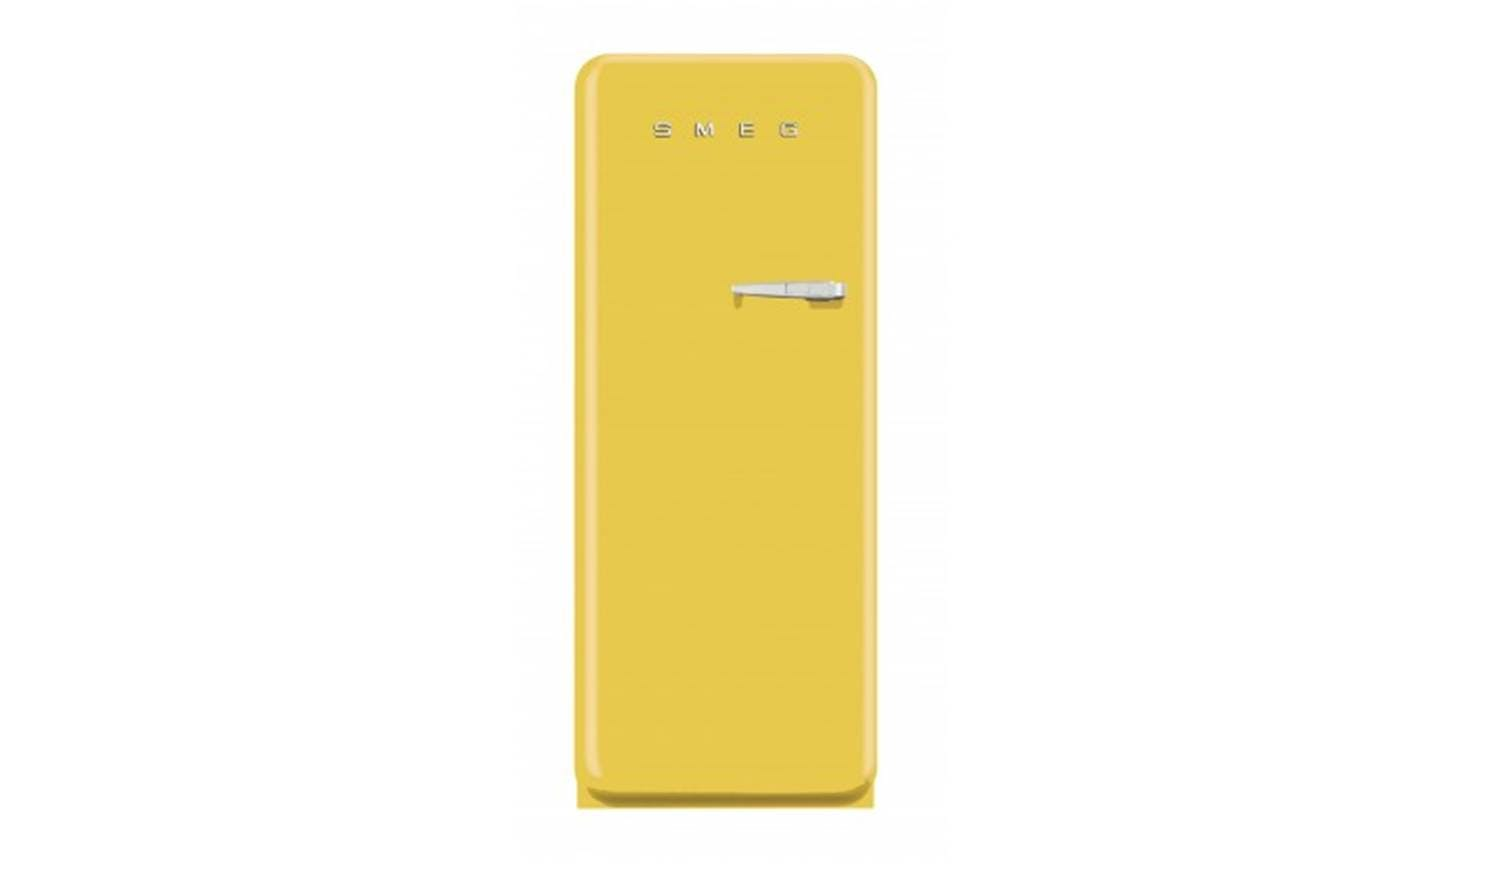 smeg fab28 fridge yellow harvey norman singapore. Black Bedroom Furniture Sets. Home Design Ideas